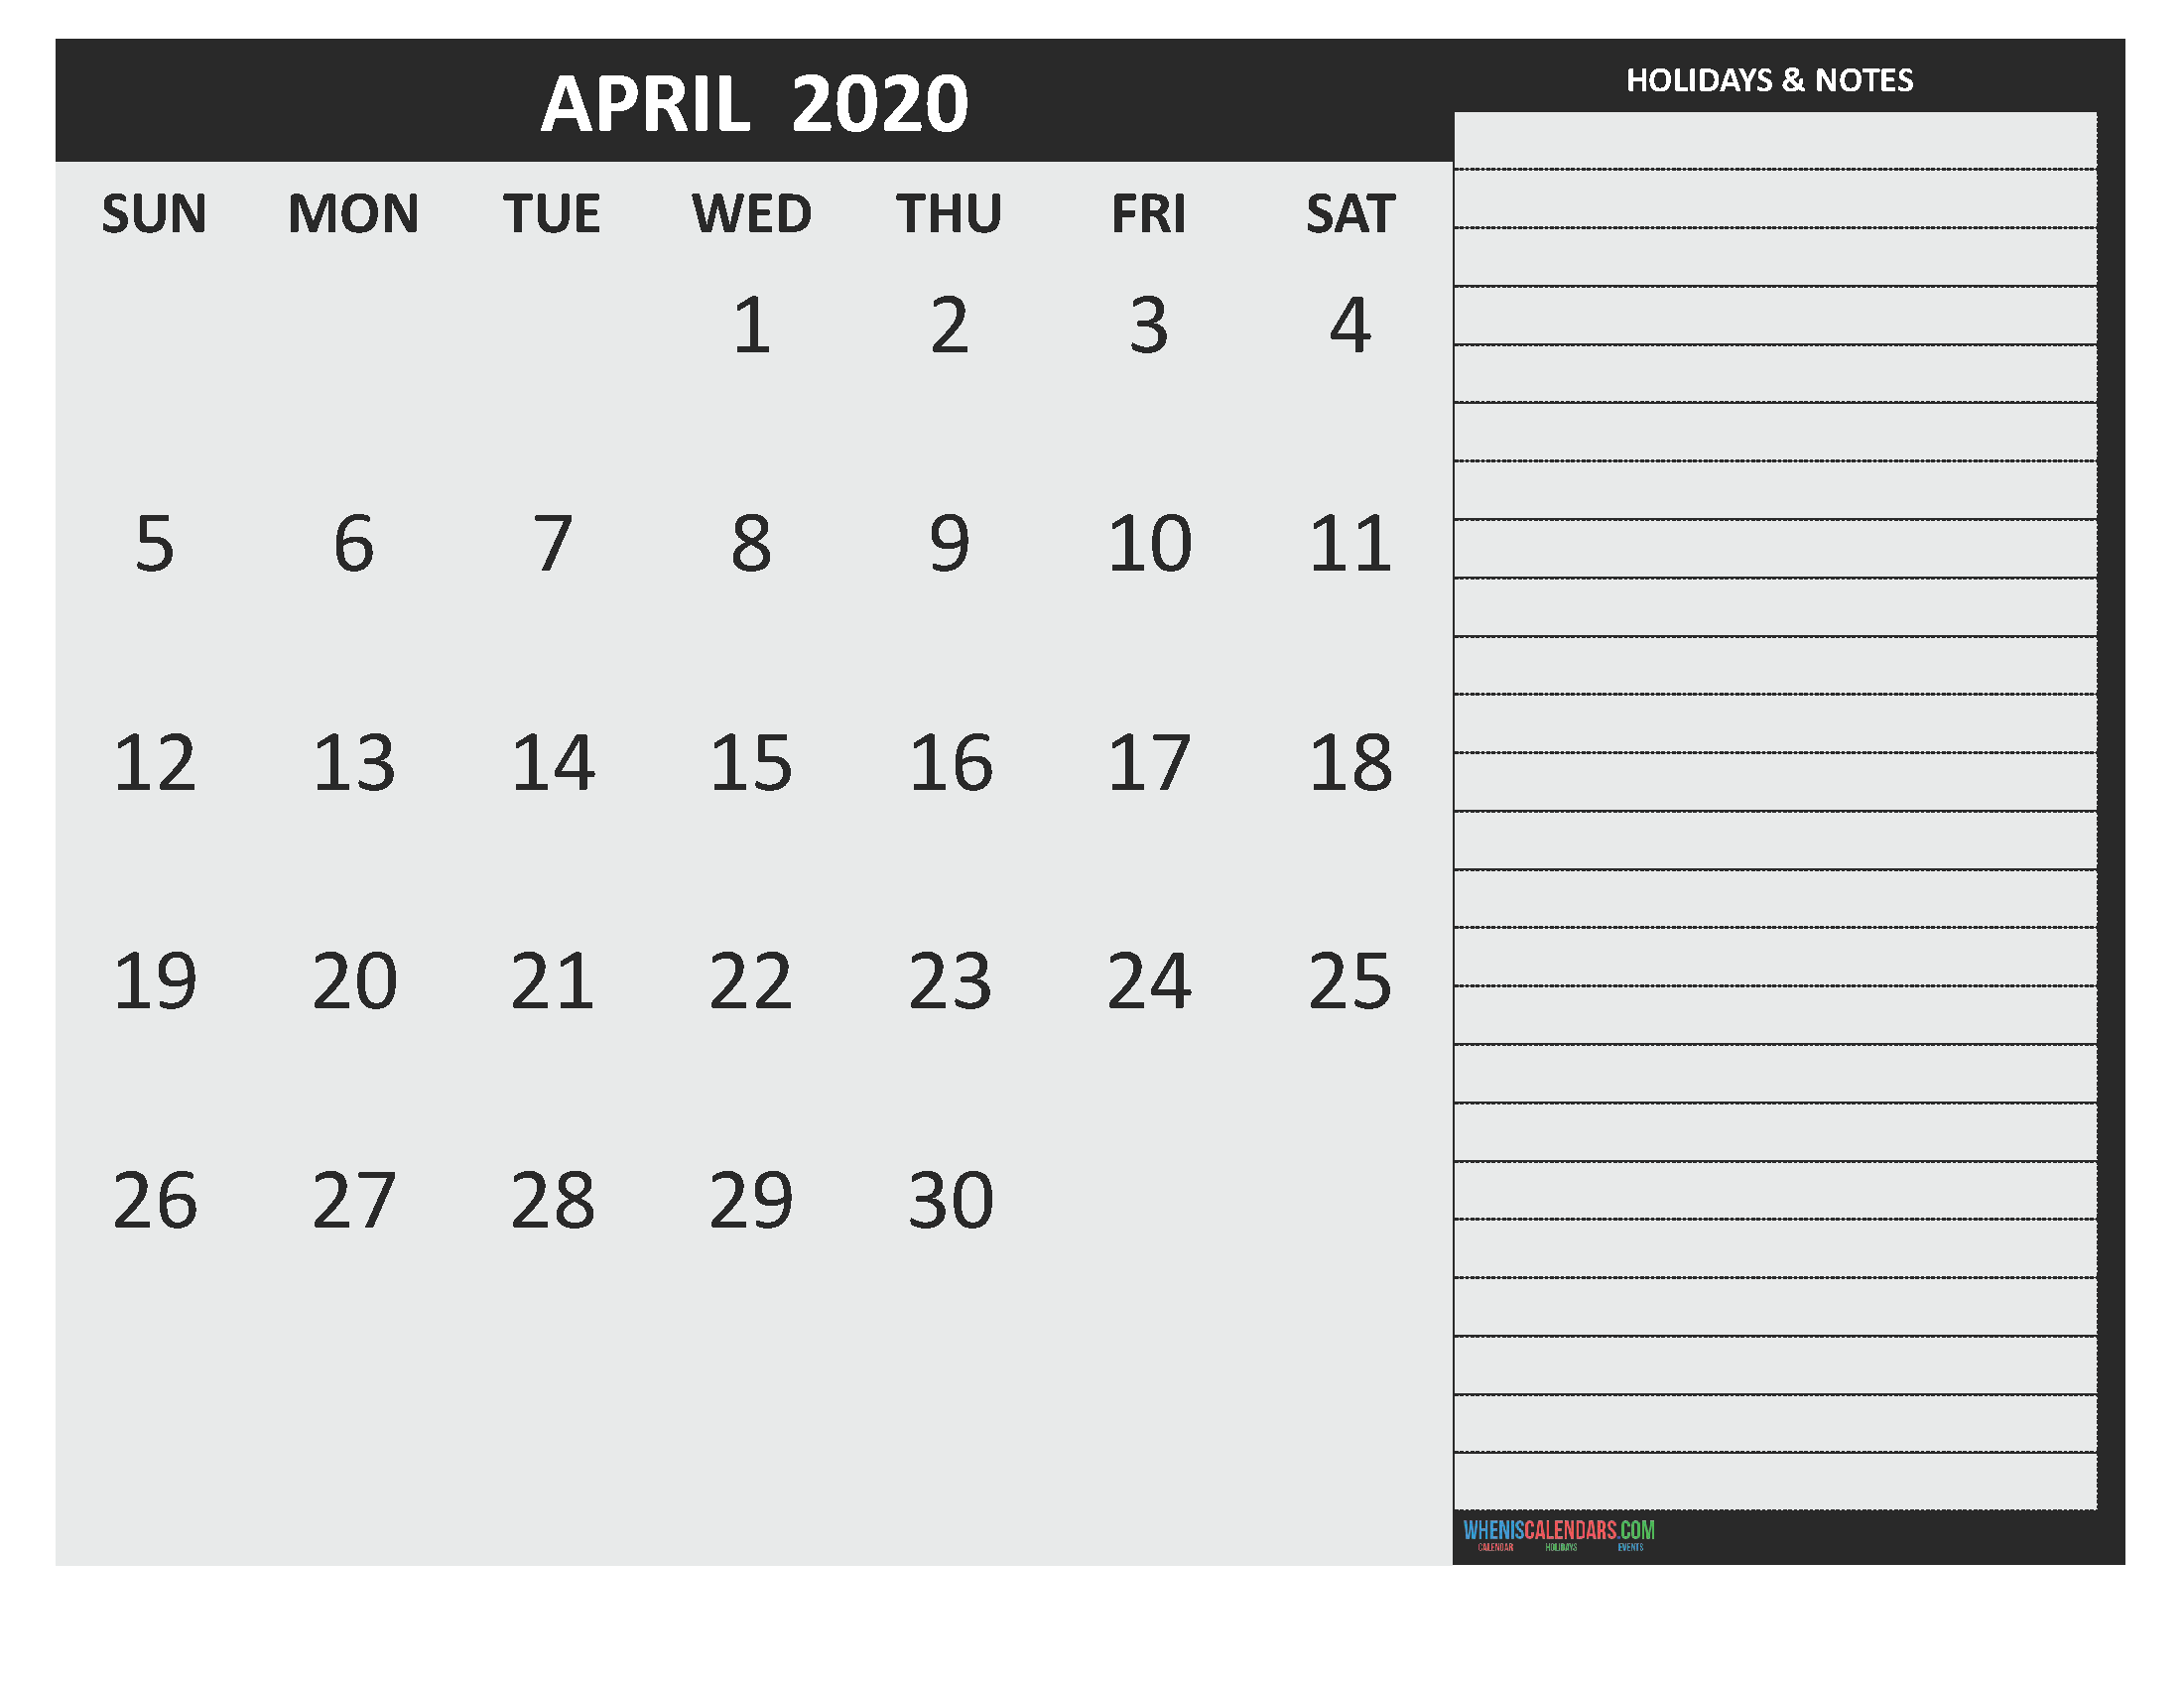 Free Printable Monthly Calendar 2020 April with Holidays